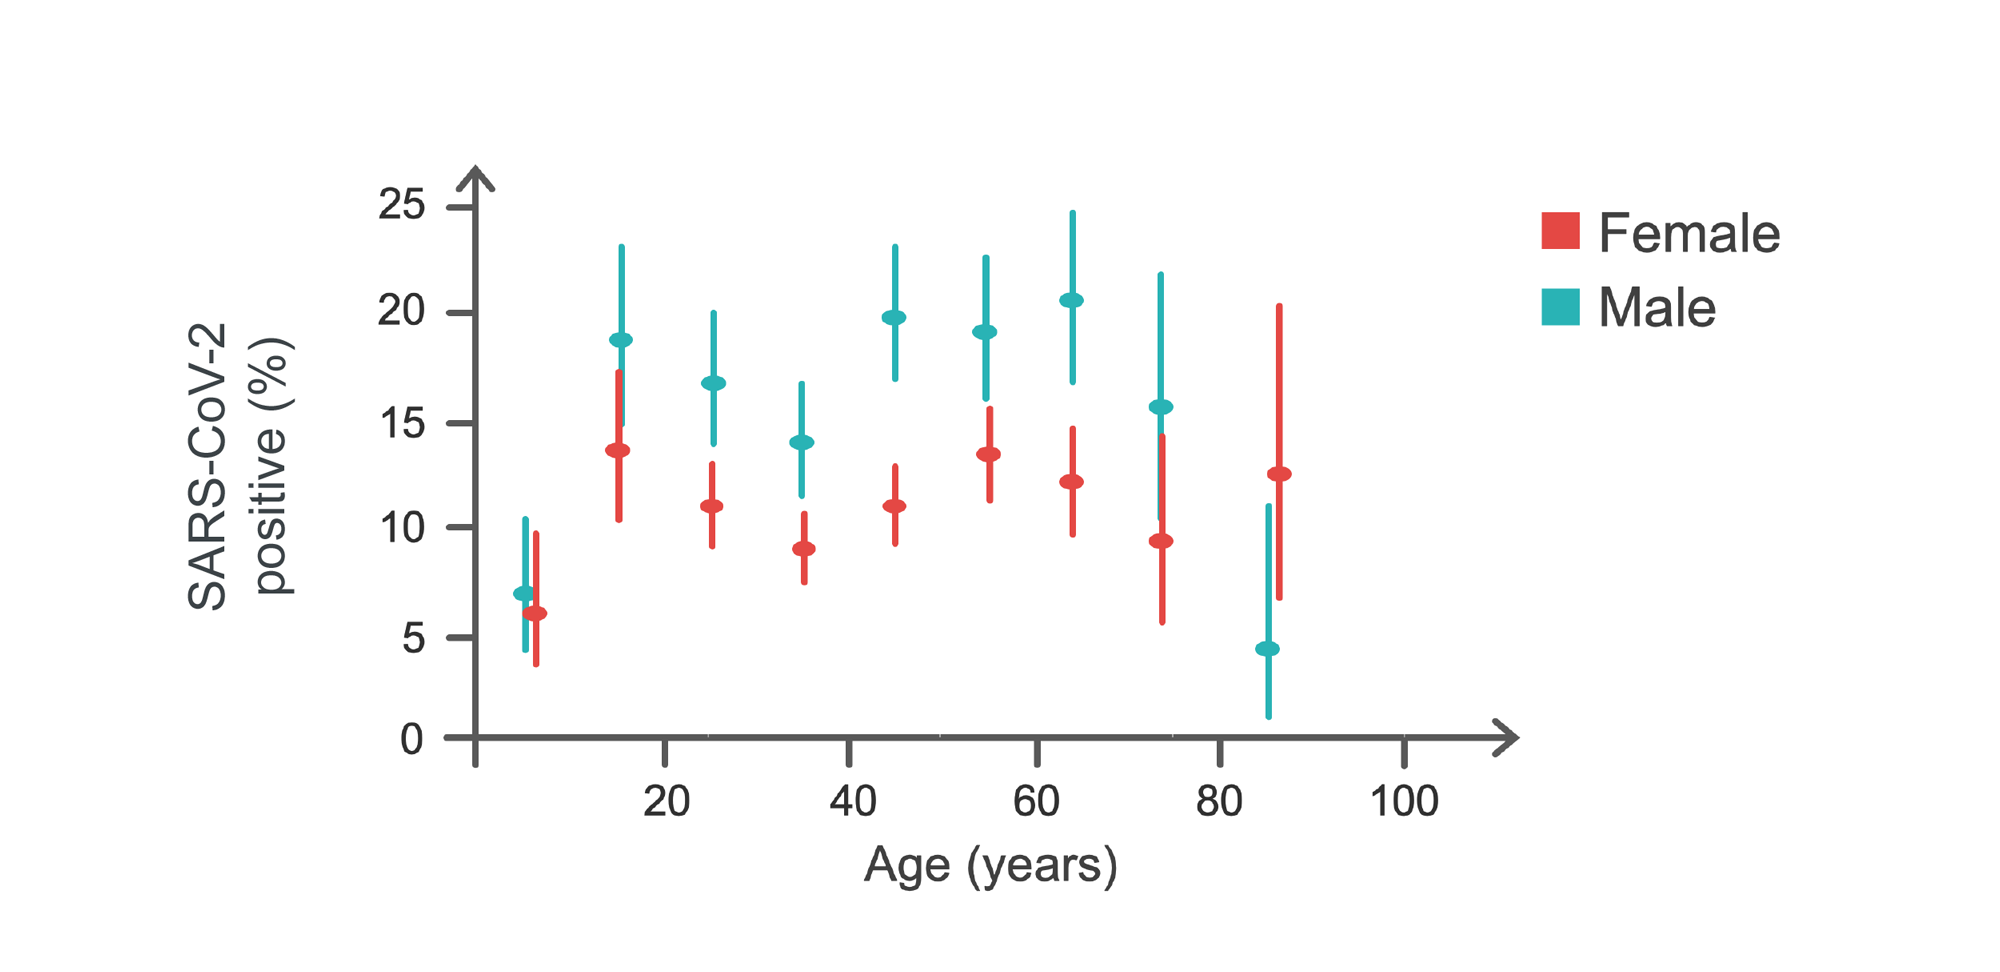 Graph of percent of positive COVID-19 cases by age and sex.